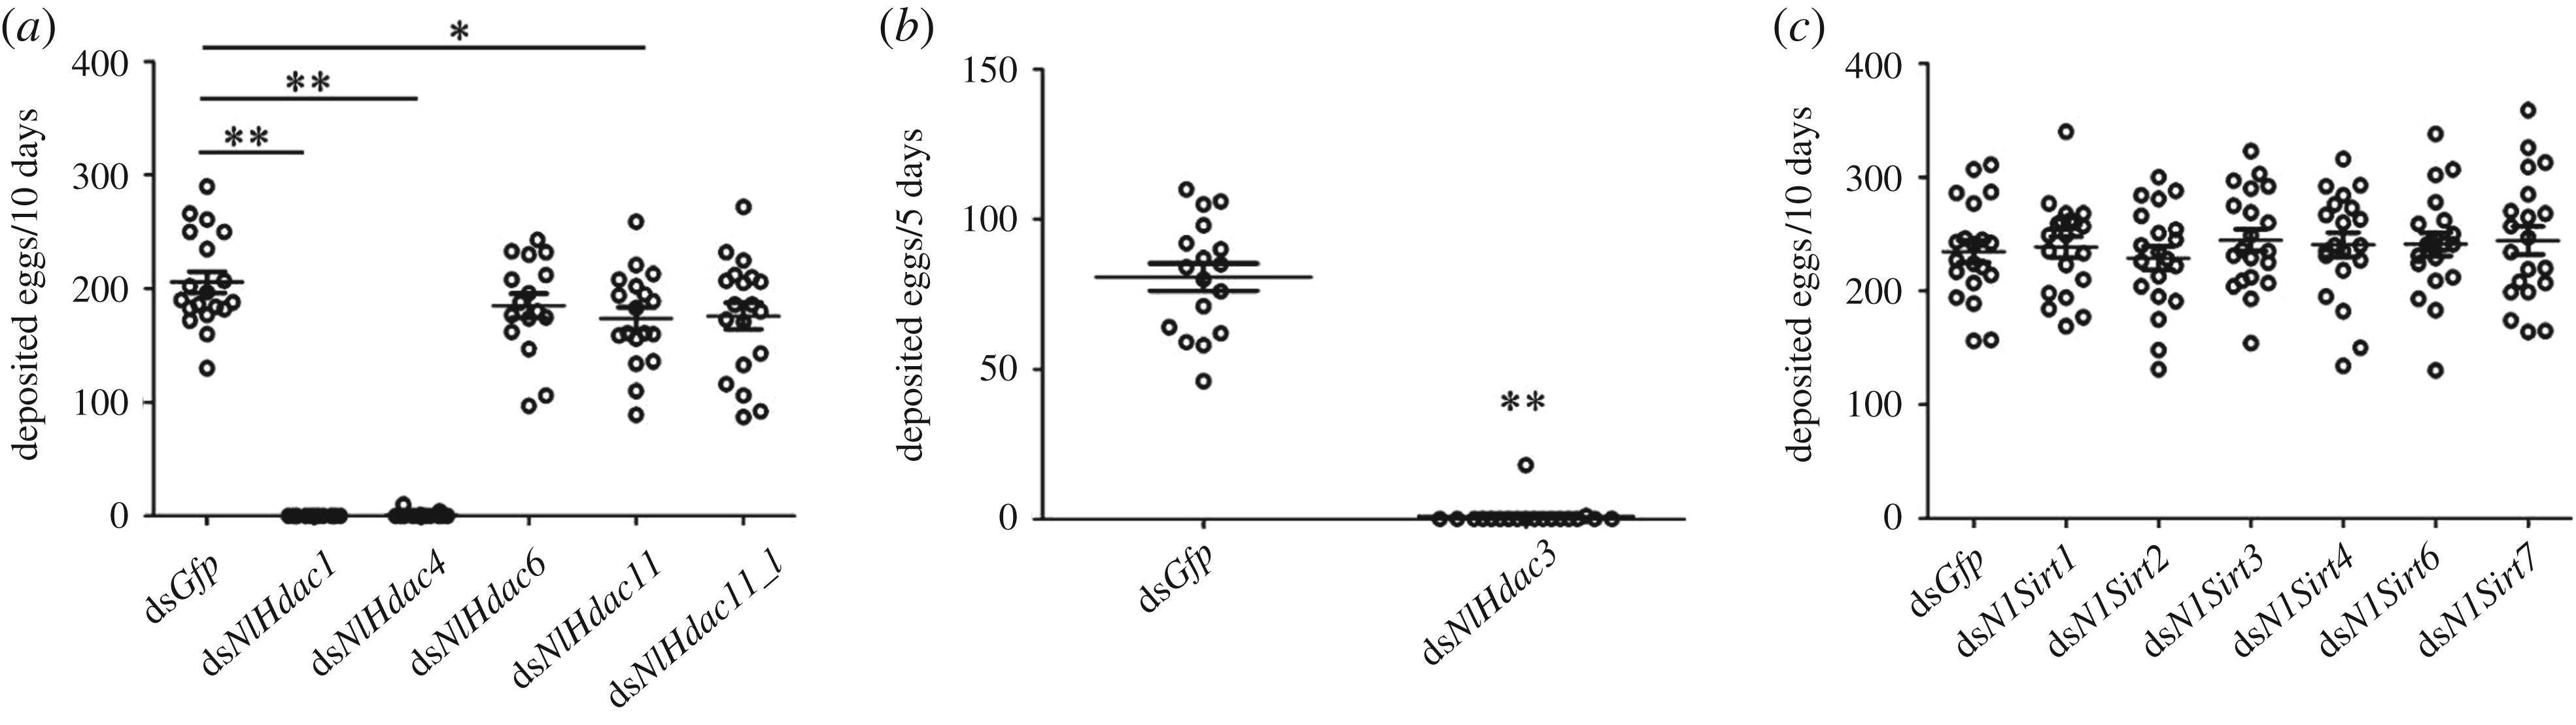 The histone deacetylase NlHDAC1 regulates both female and male